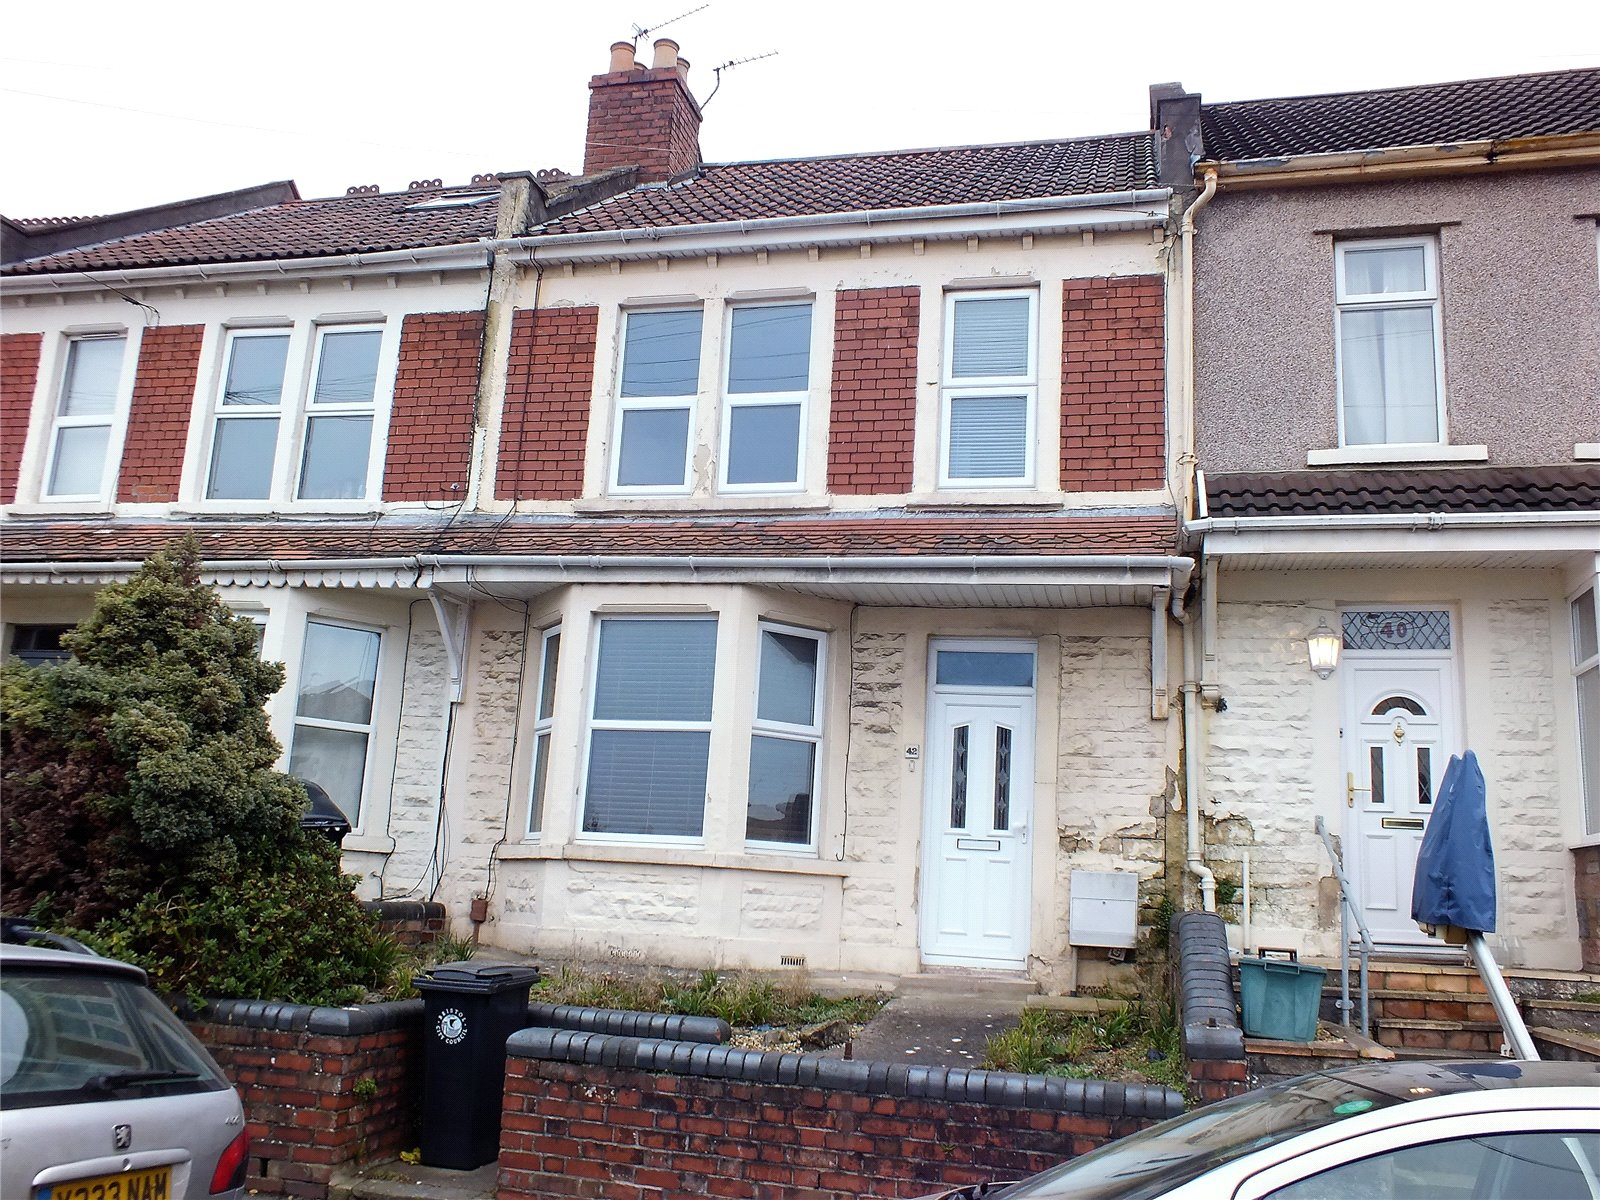 3 Bedrooms Terraced House for sale in Sandringham Road Brislington Bristol BS4